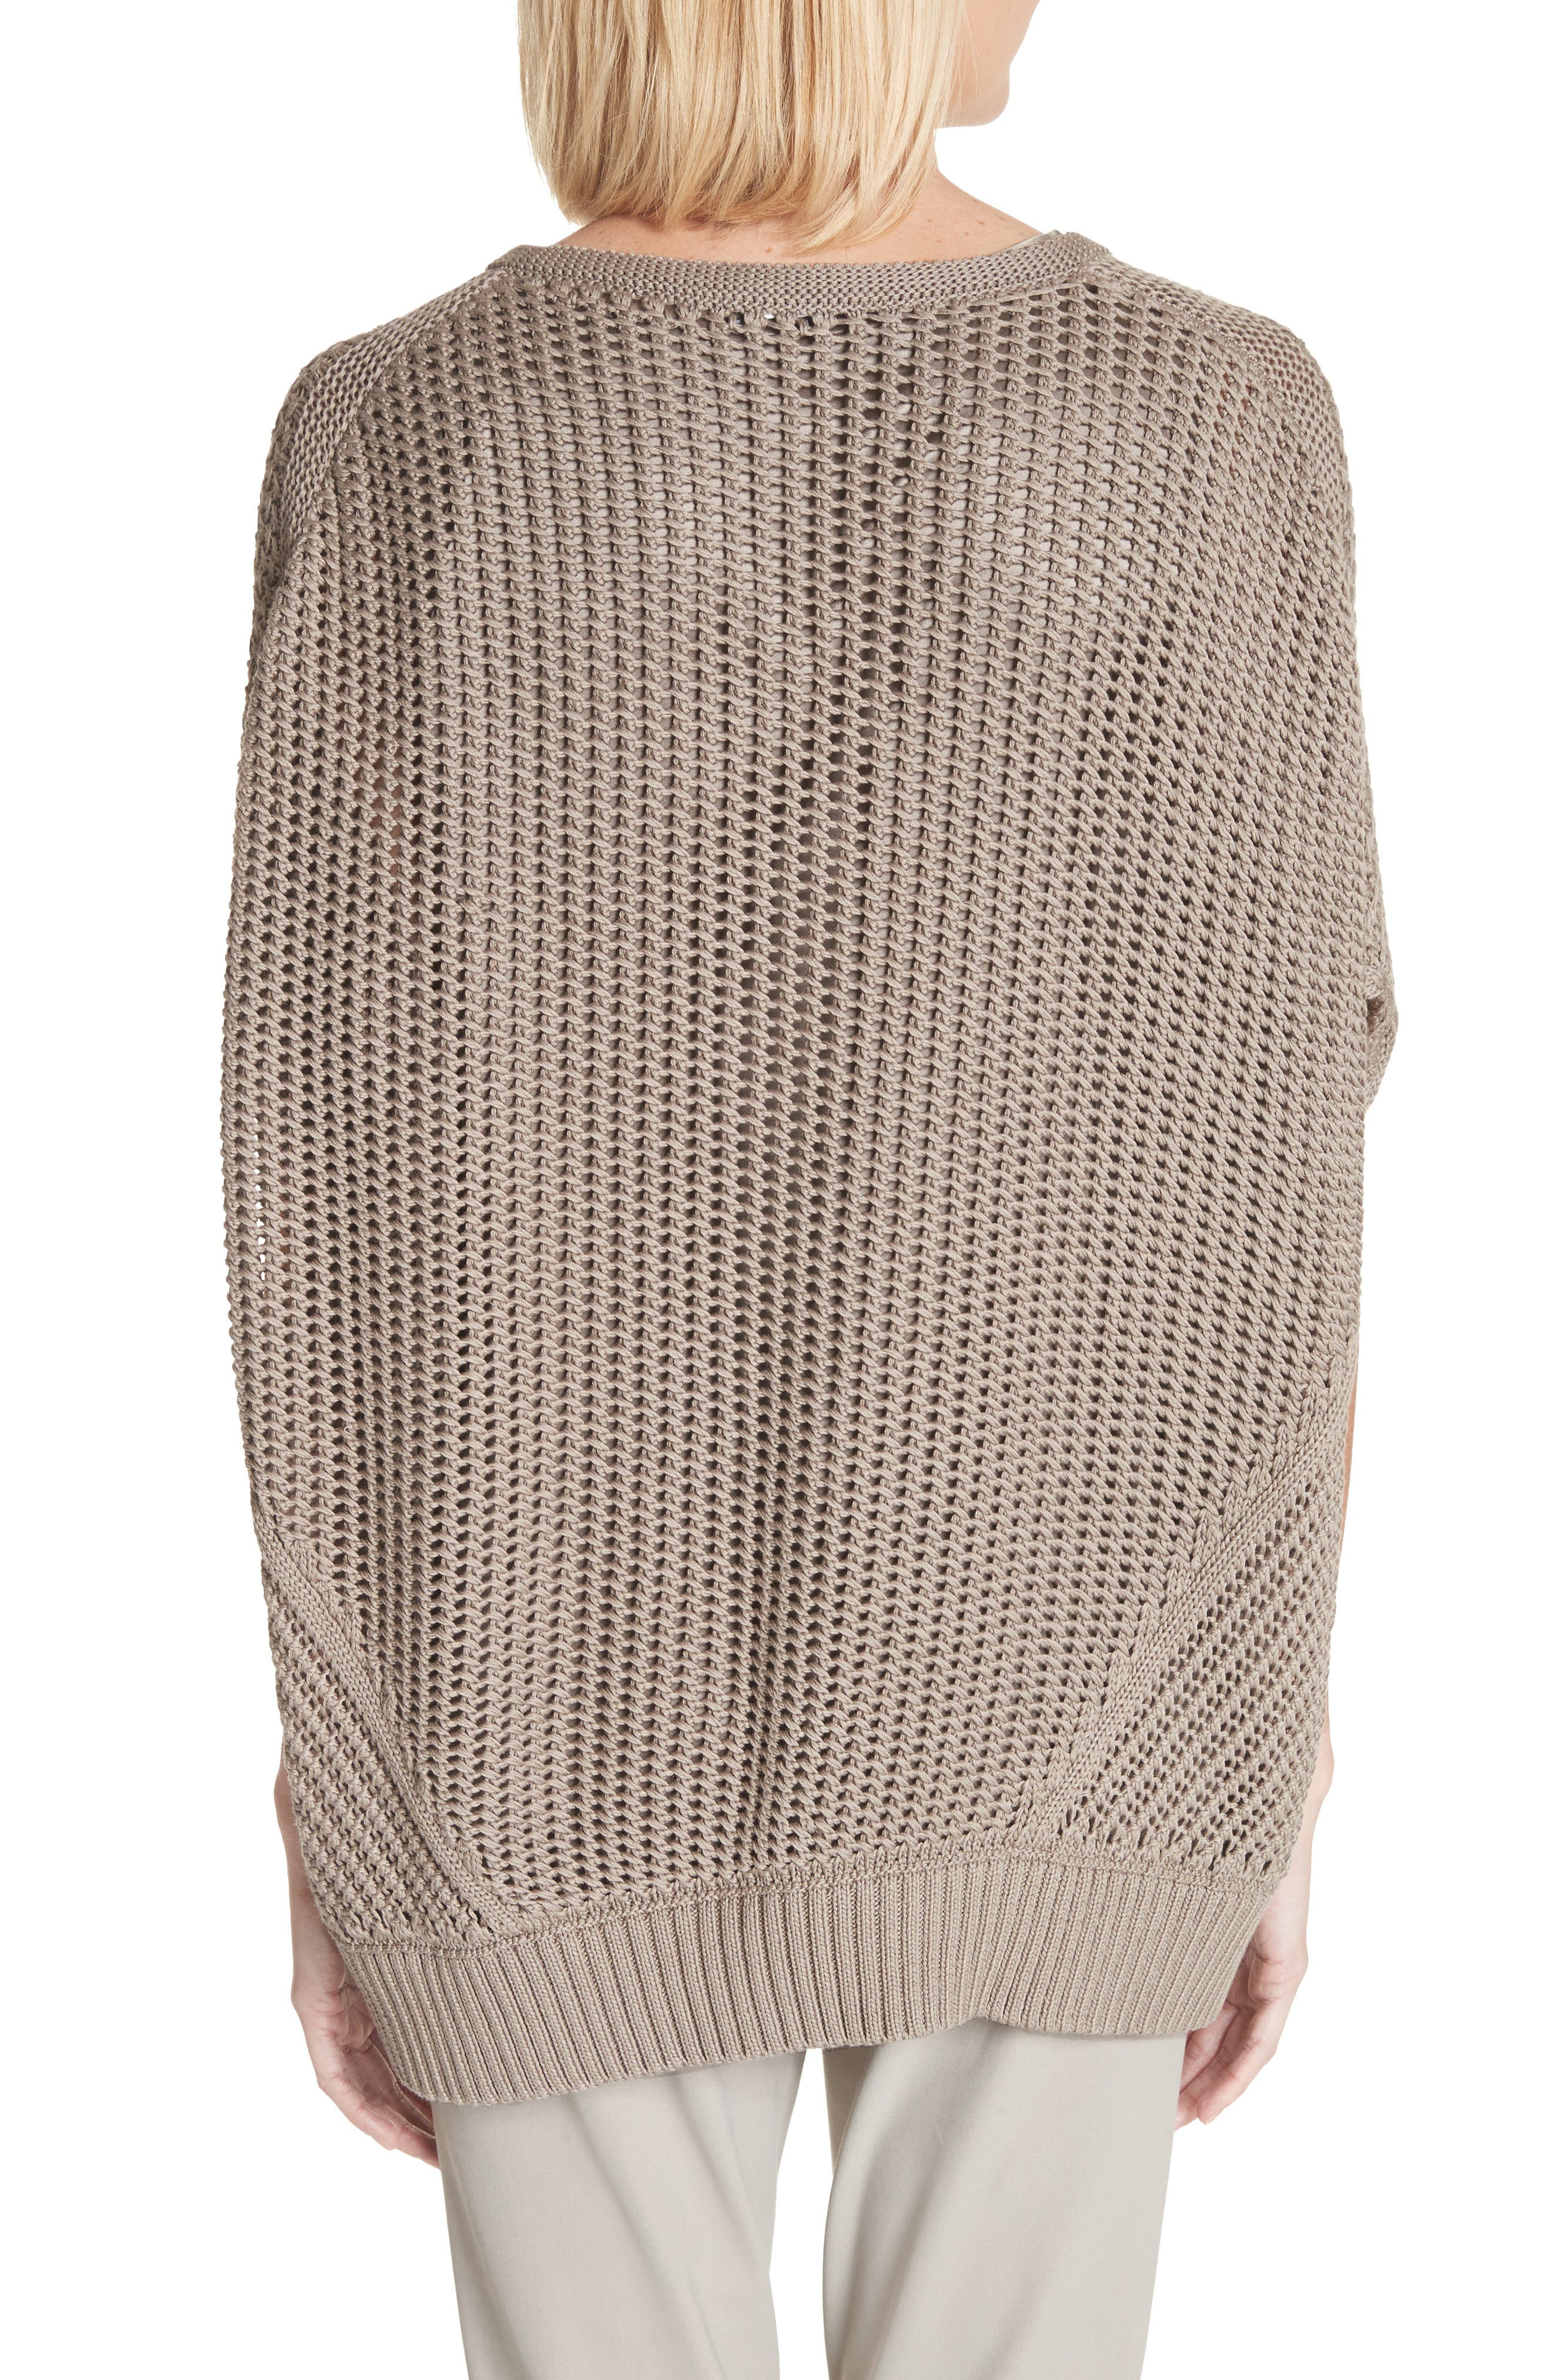 Mixed Stitch Cotton & Silk Sweater,                             Alternate thumbnail 2, color,                             026